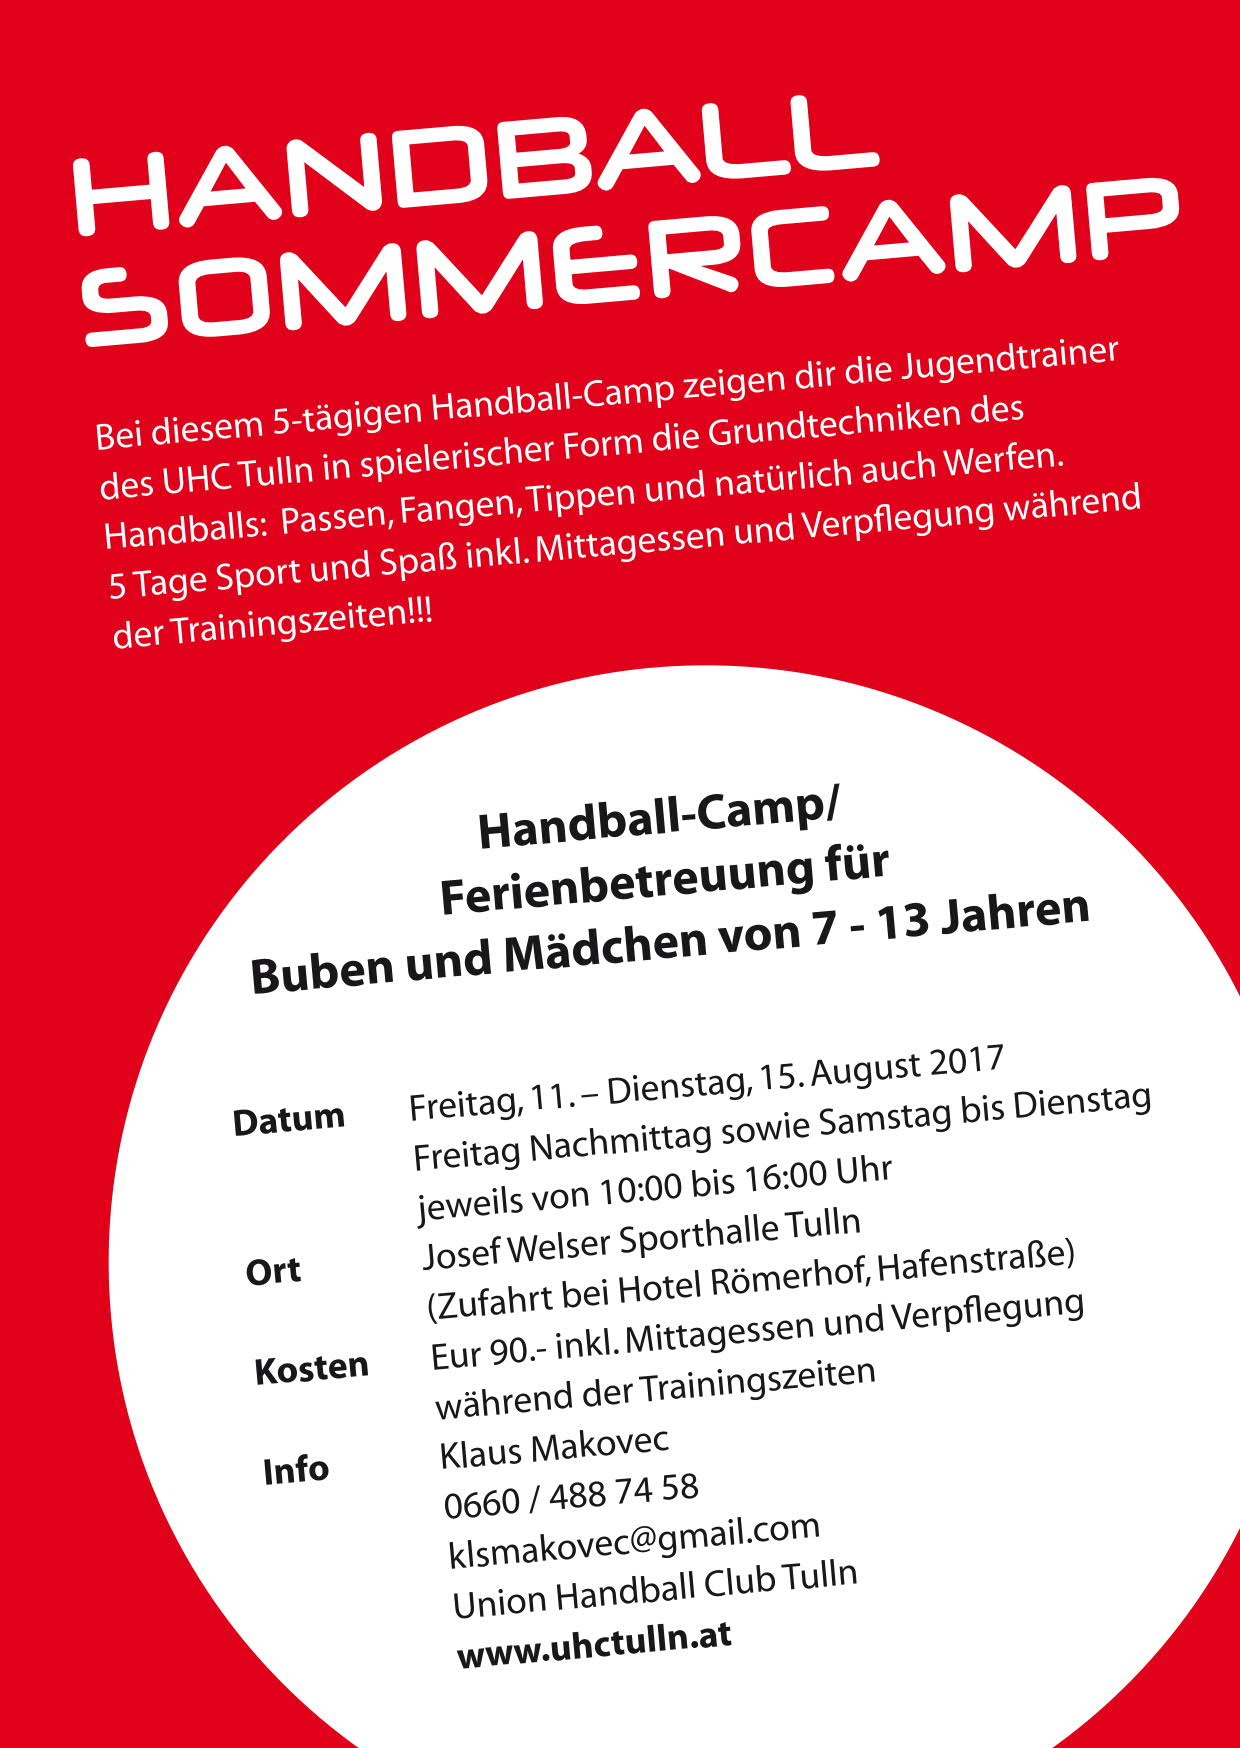 union-handball-tulln-handball-sommer-camp-2017-2